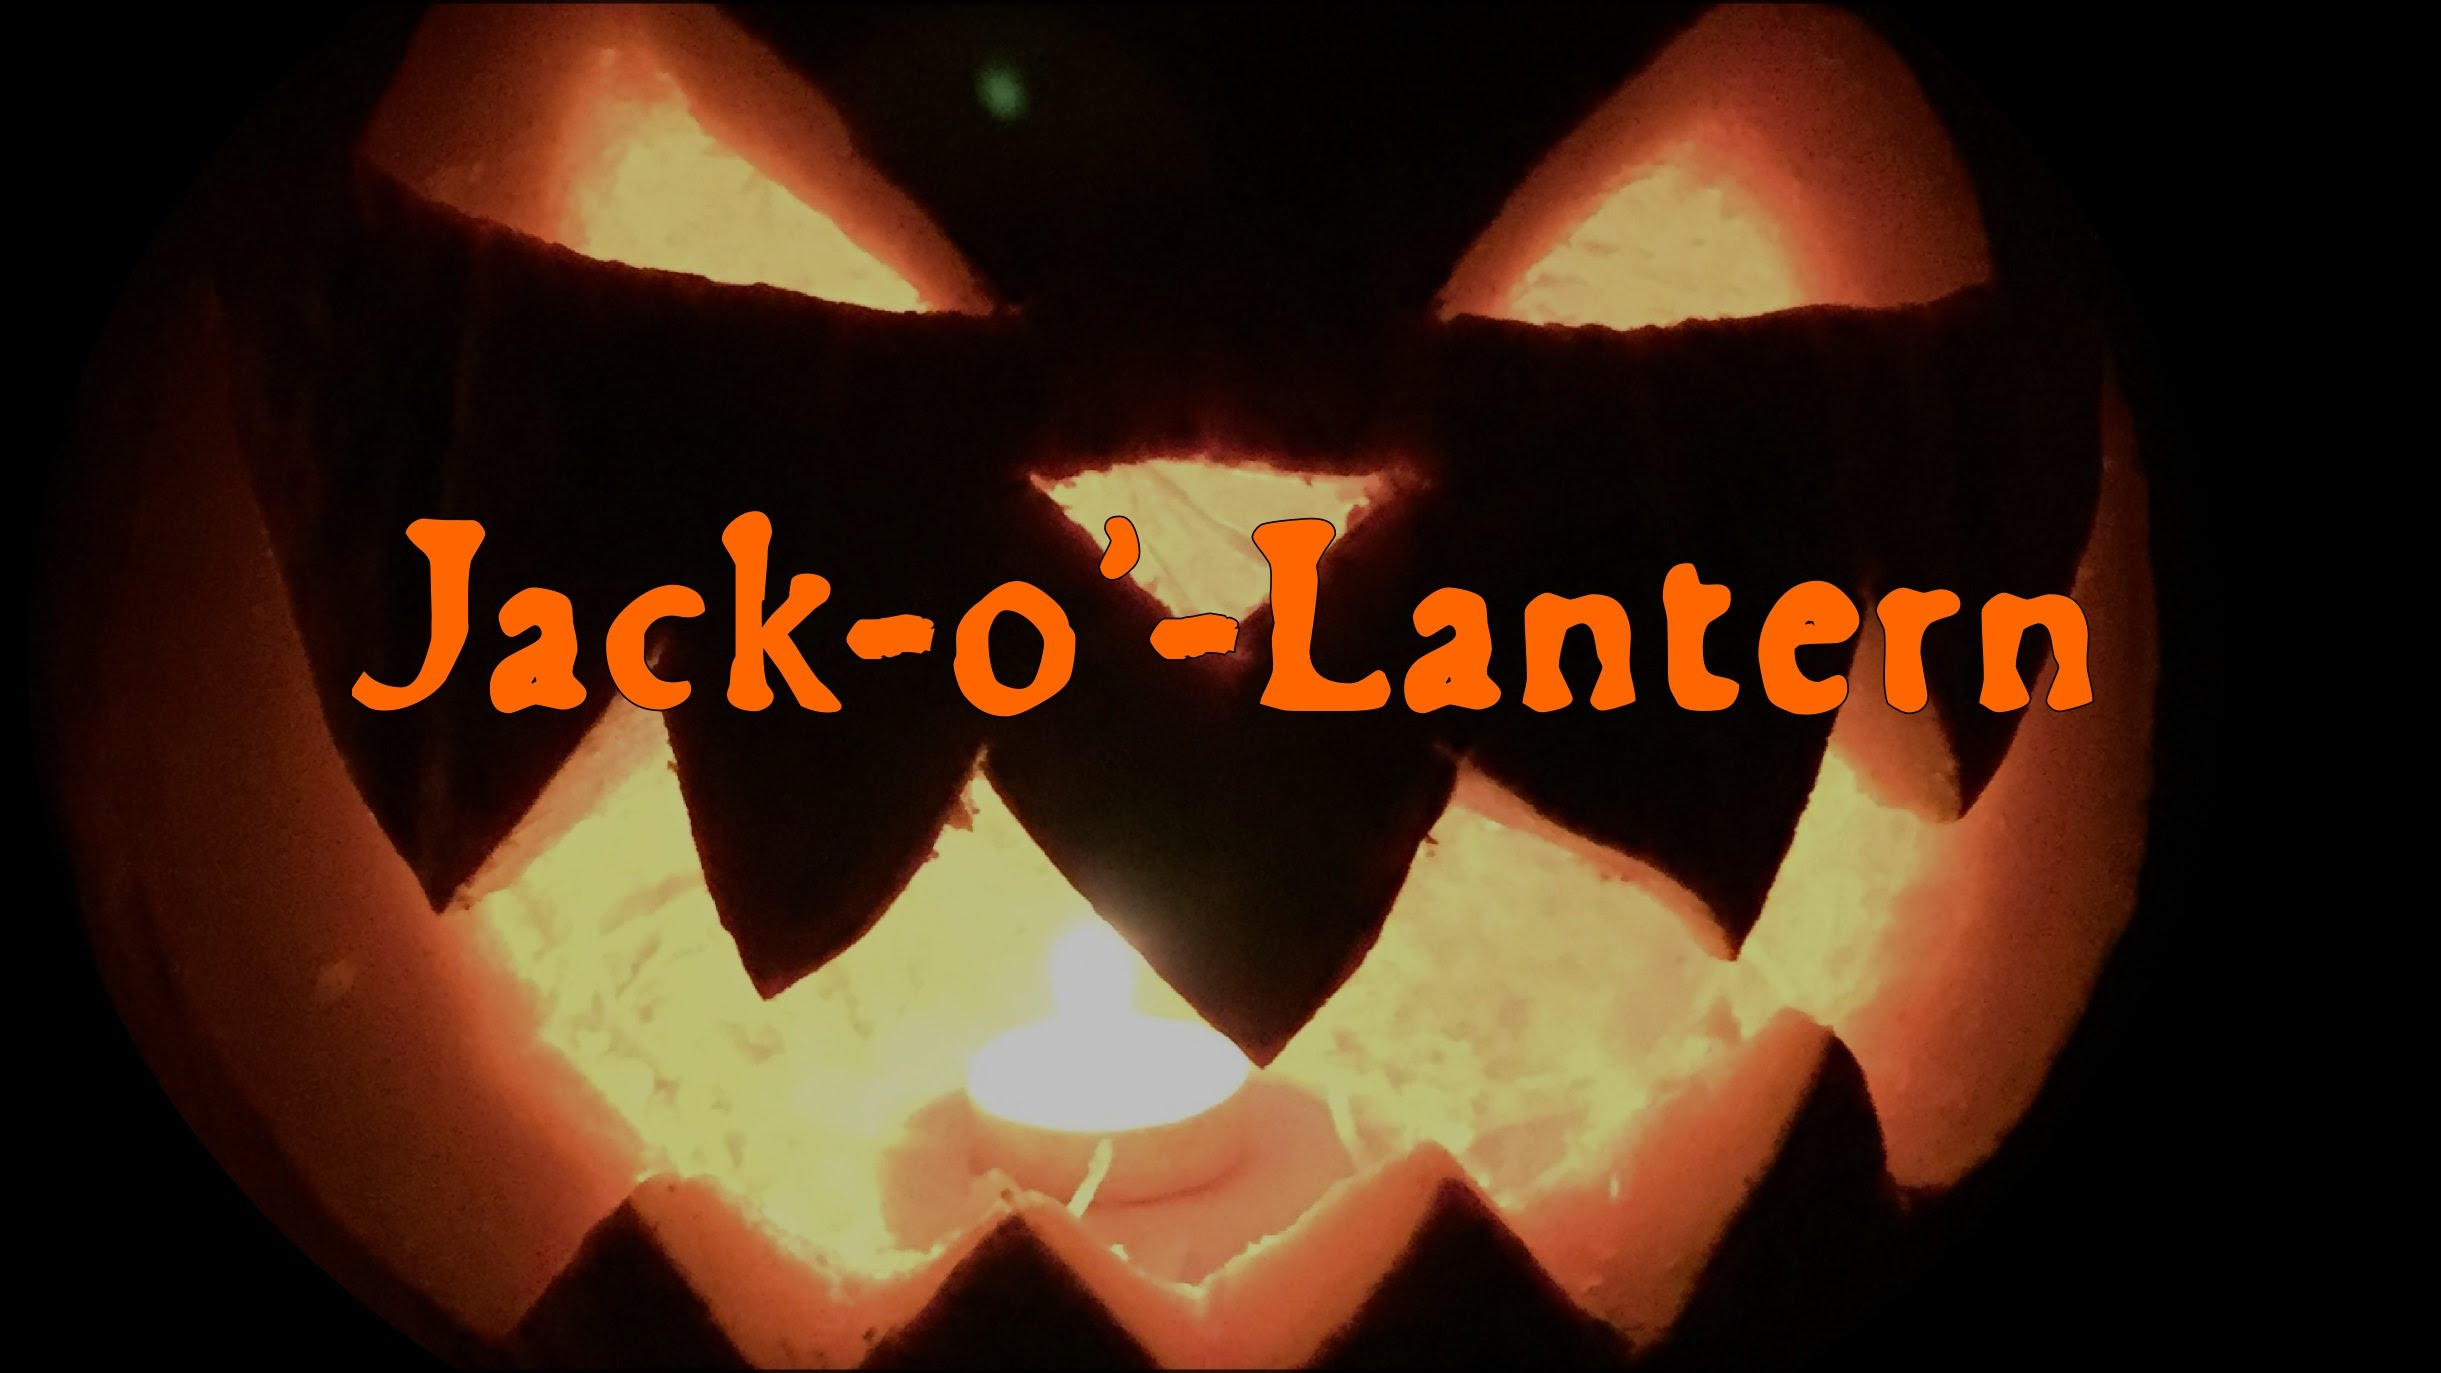 Jack-o'-Lantern: The History of Halloween - YouTube